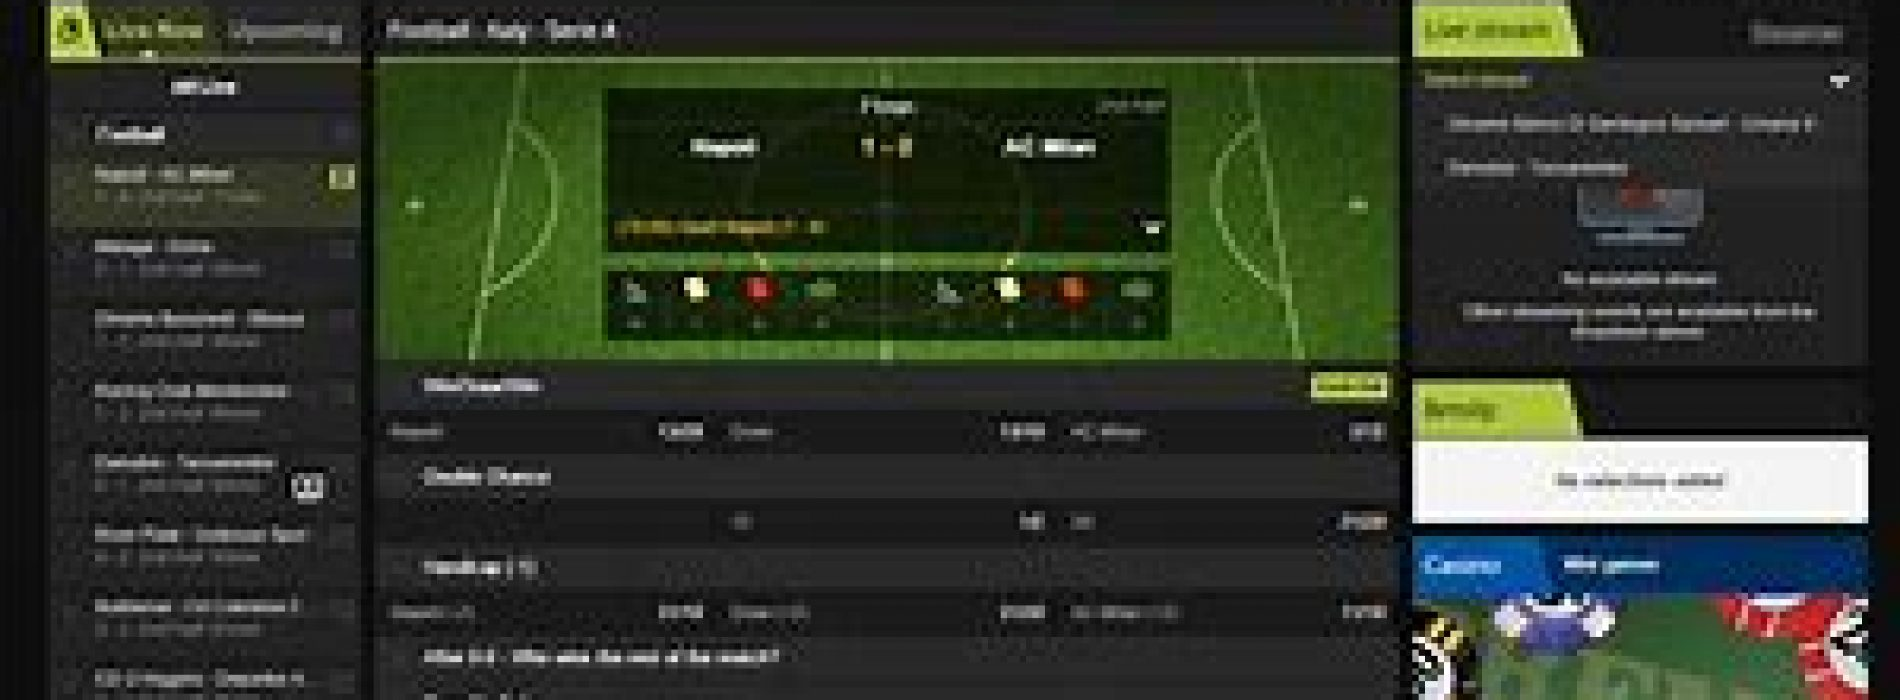 Types of Football Bets on Offer